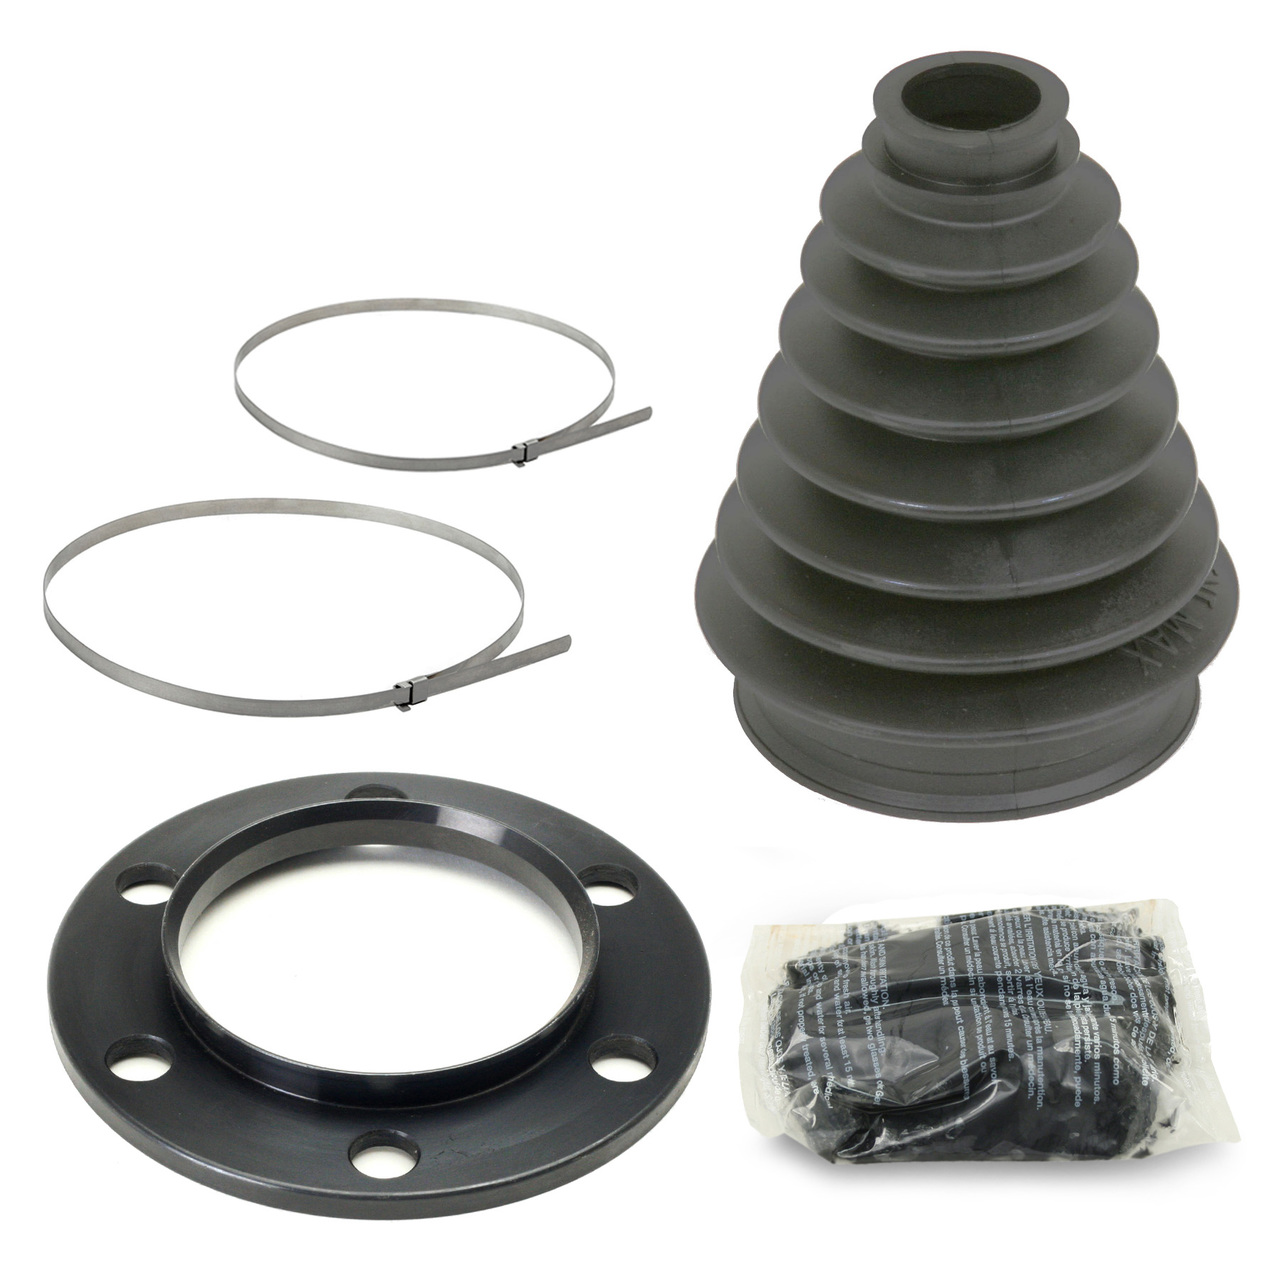 Porsche 930 Cv Joint Mini Axle Boot Kit With Chromoly Flange/Clamps/Grease